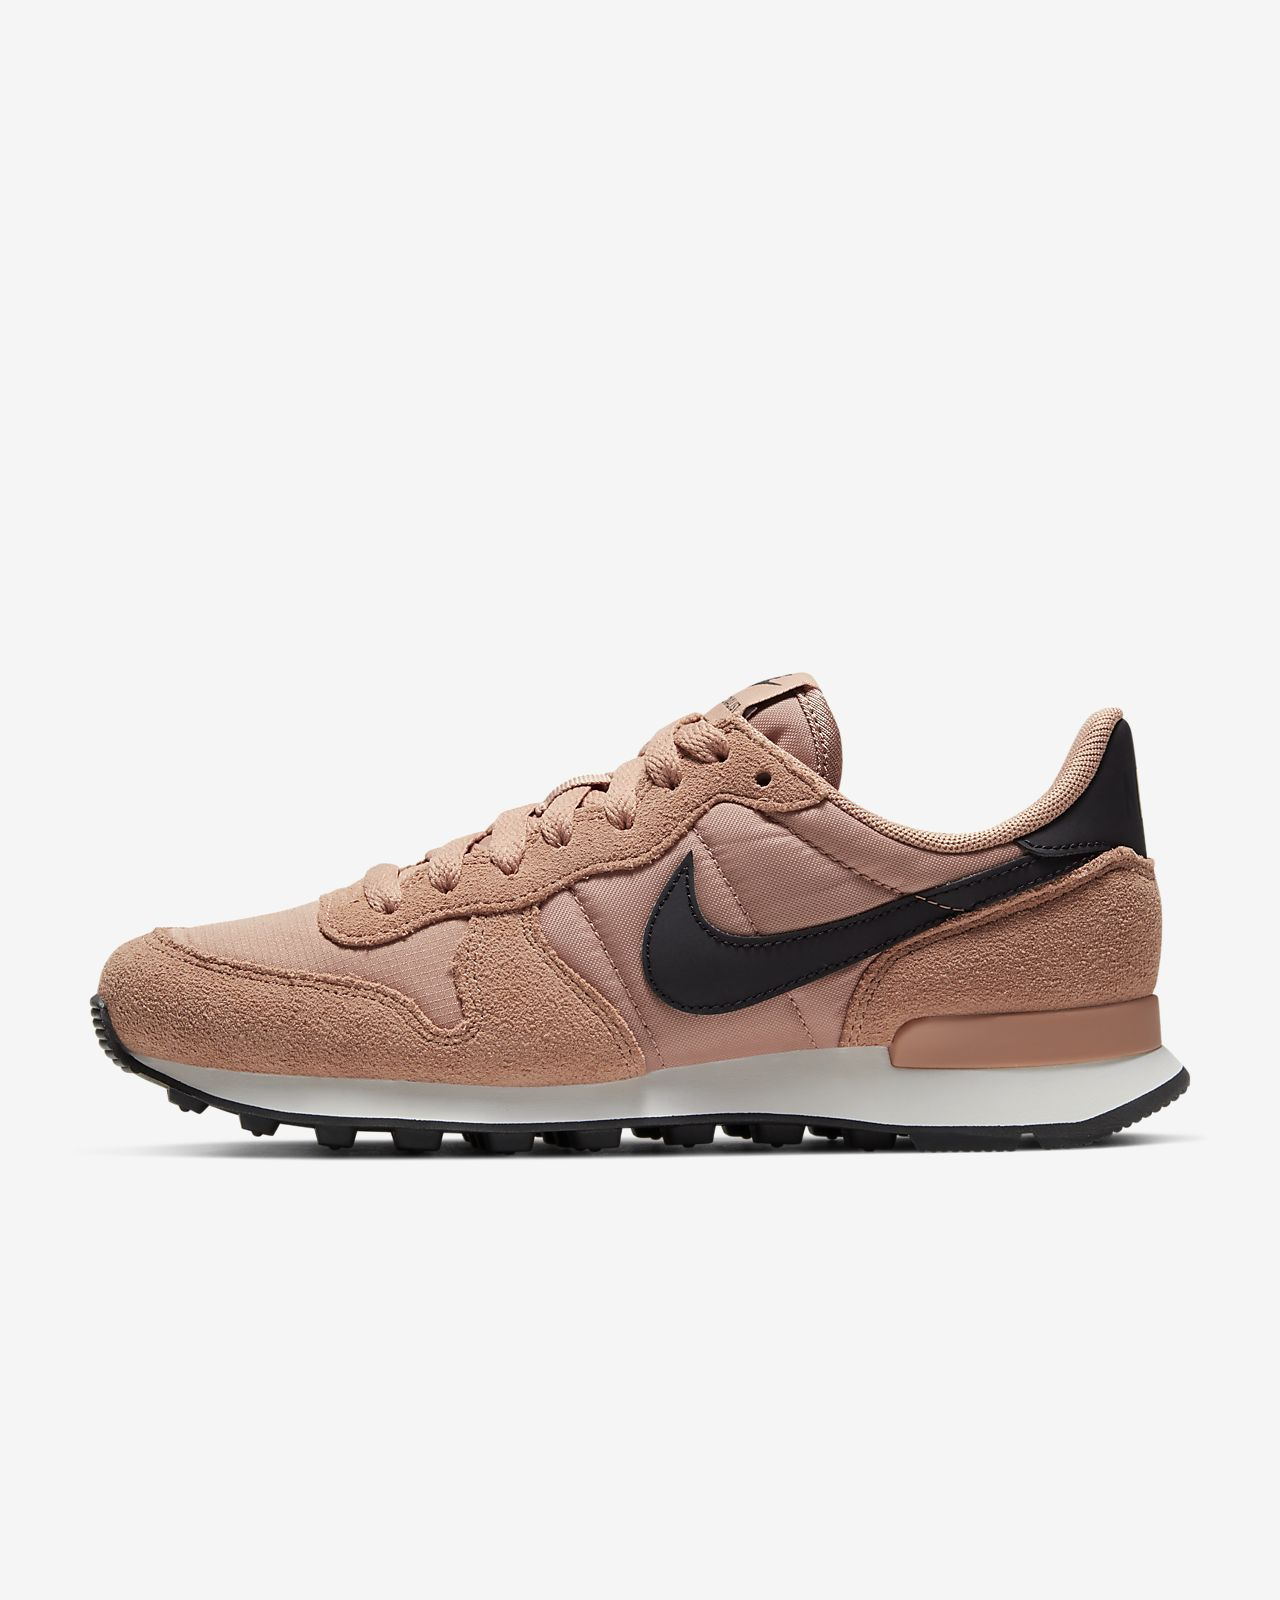 brand new 9e15c 0c000 Low Resolution Chaussure Nike Internationalist pour Femme Chaussure Nike  Internationalist pour Femme